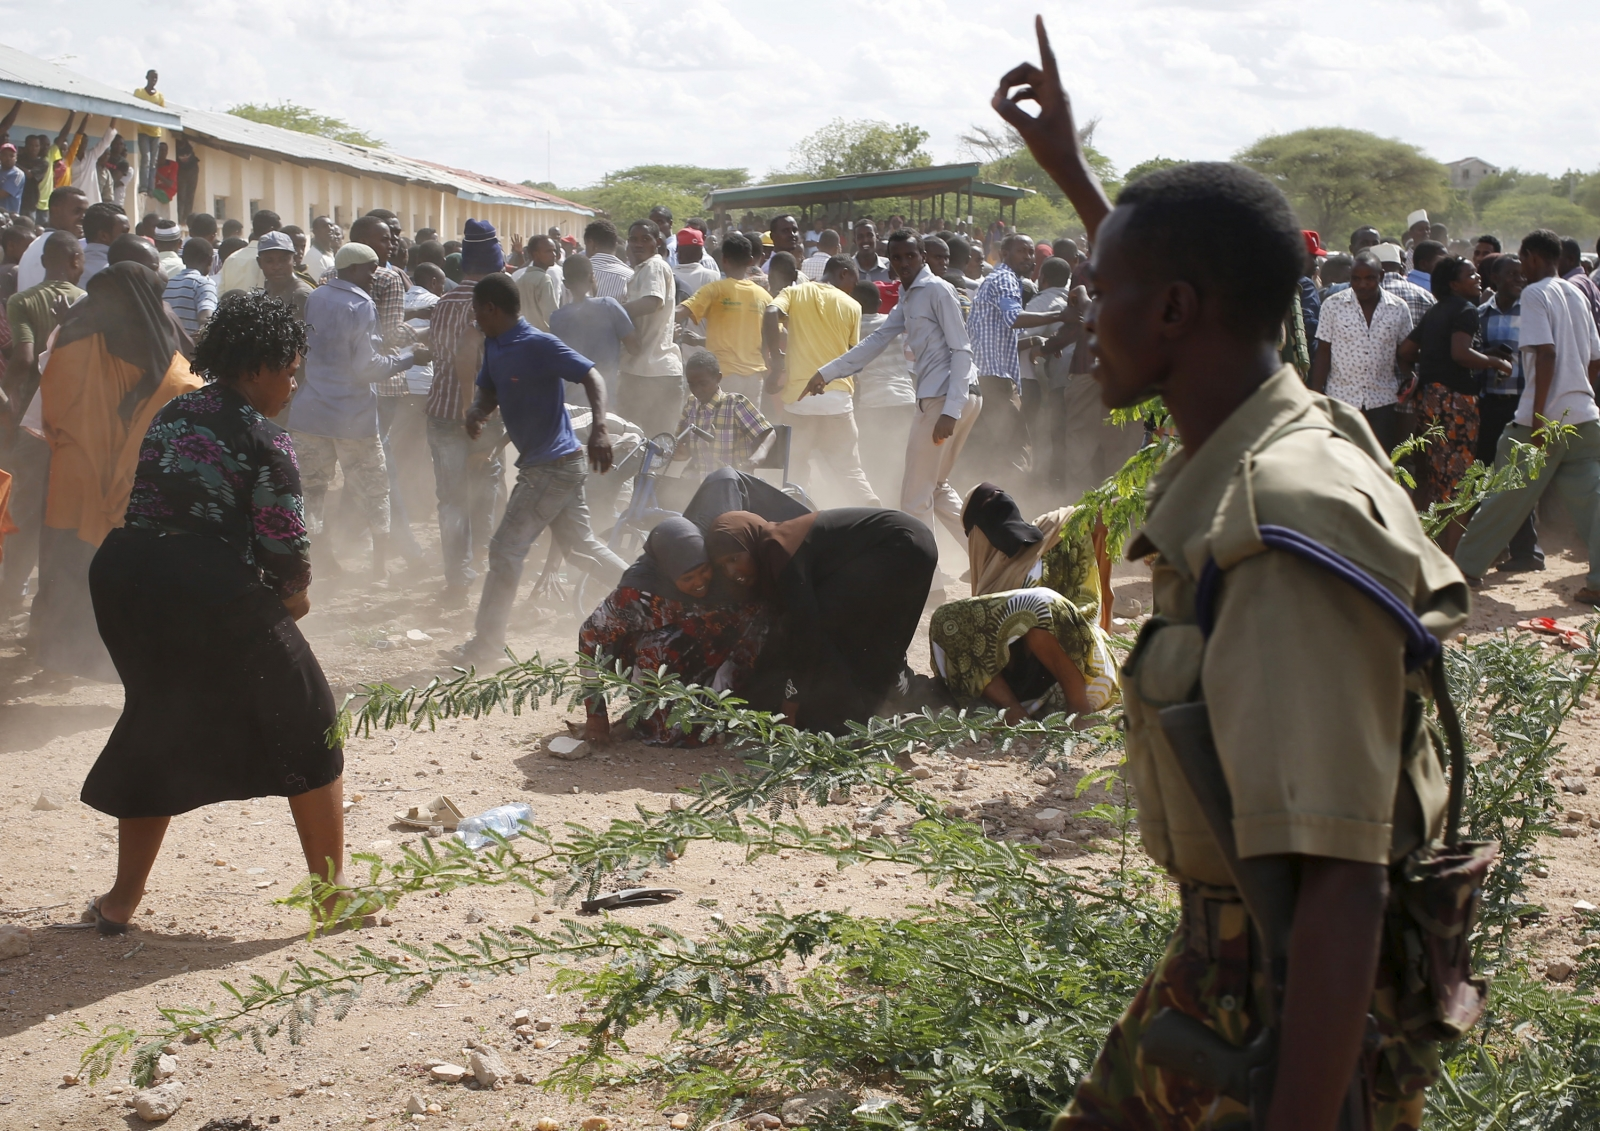 who is al shabaab Militants linked to al qaeda unleash deadly car bombings in somalia the shabab claimed responsibility for bombings over three days that killed nearly 20 people and injured many others by hussein mohamed march 25, 2018.